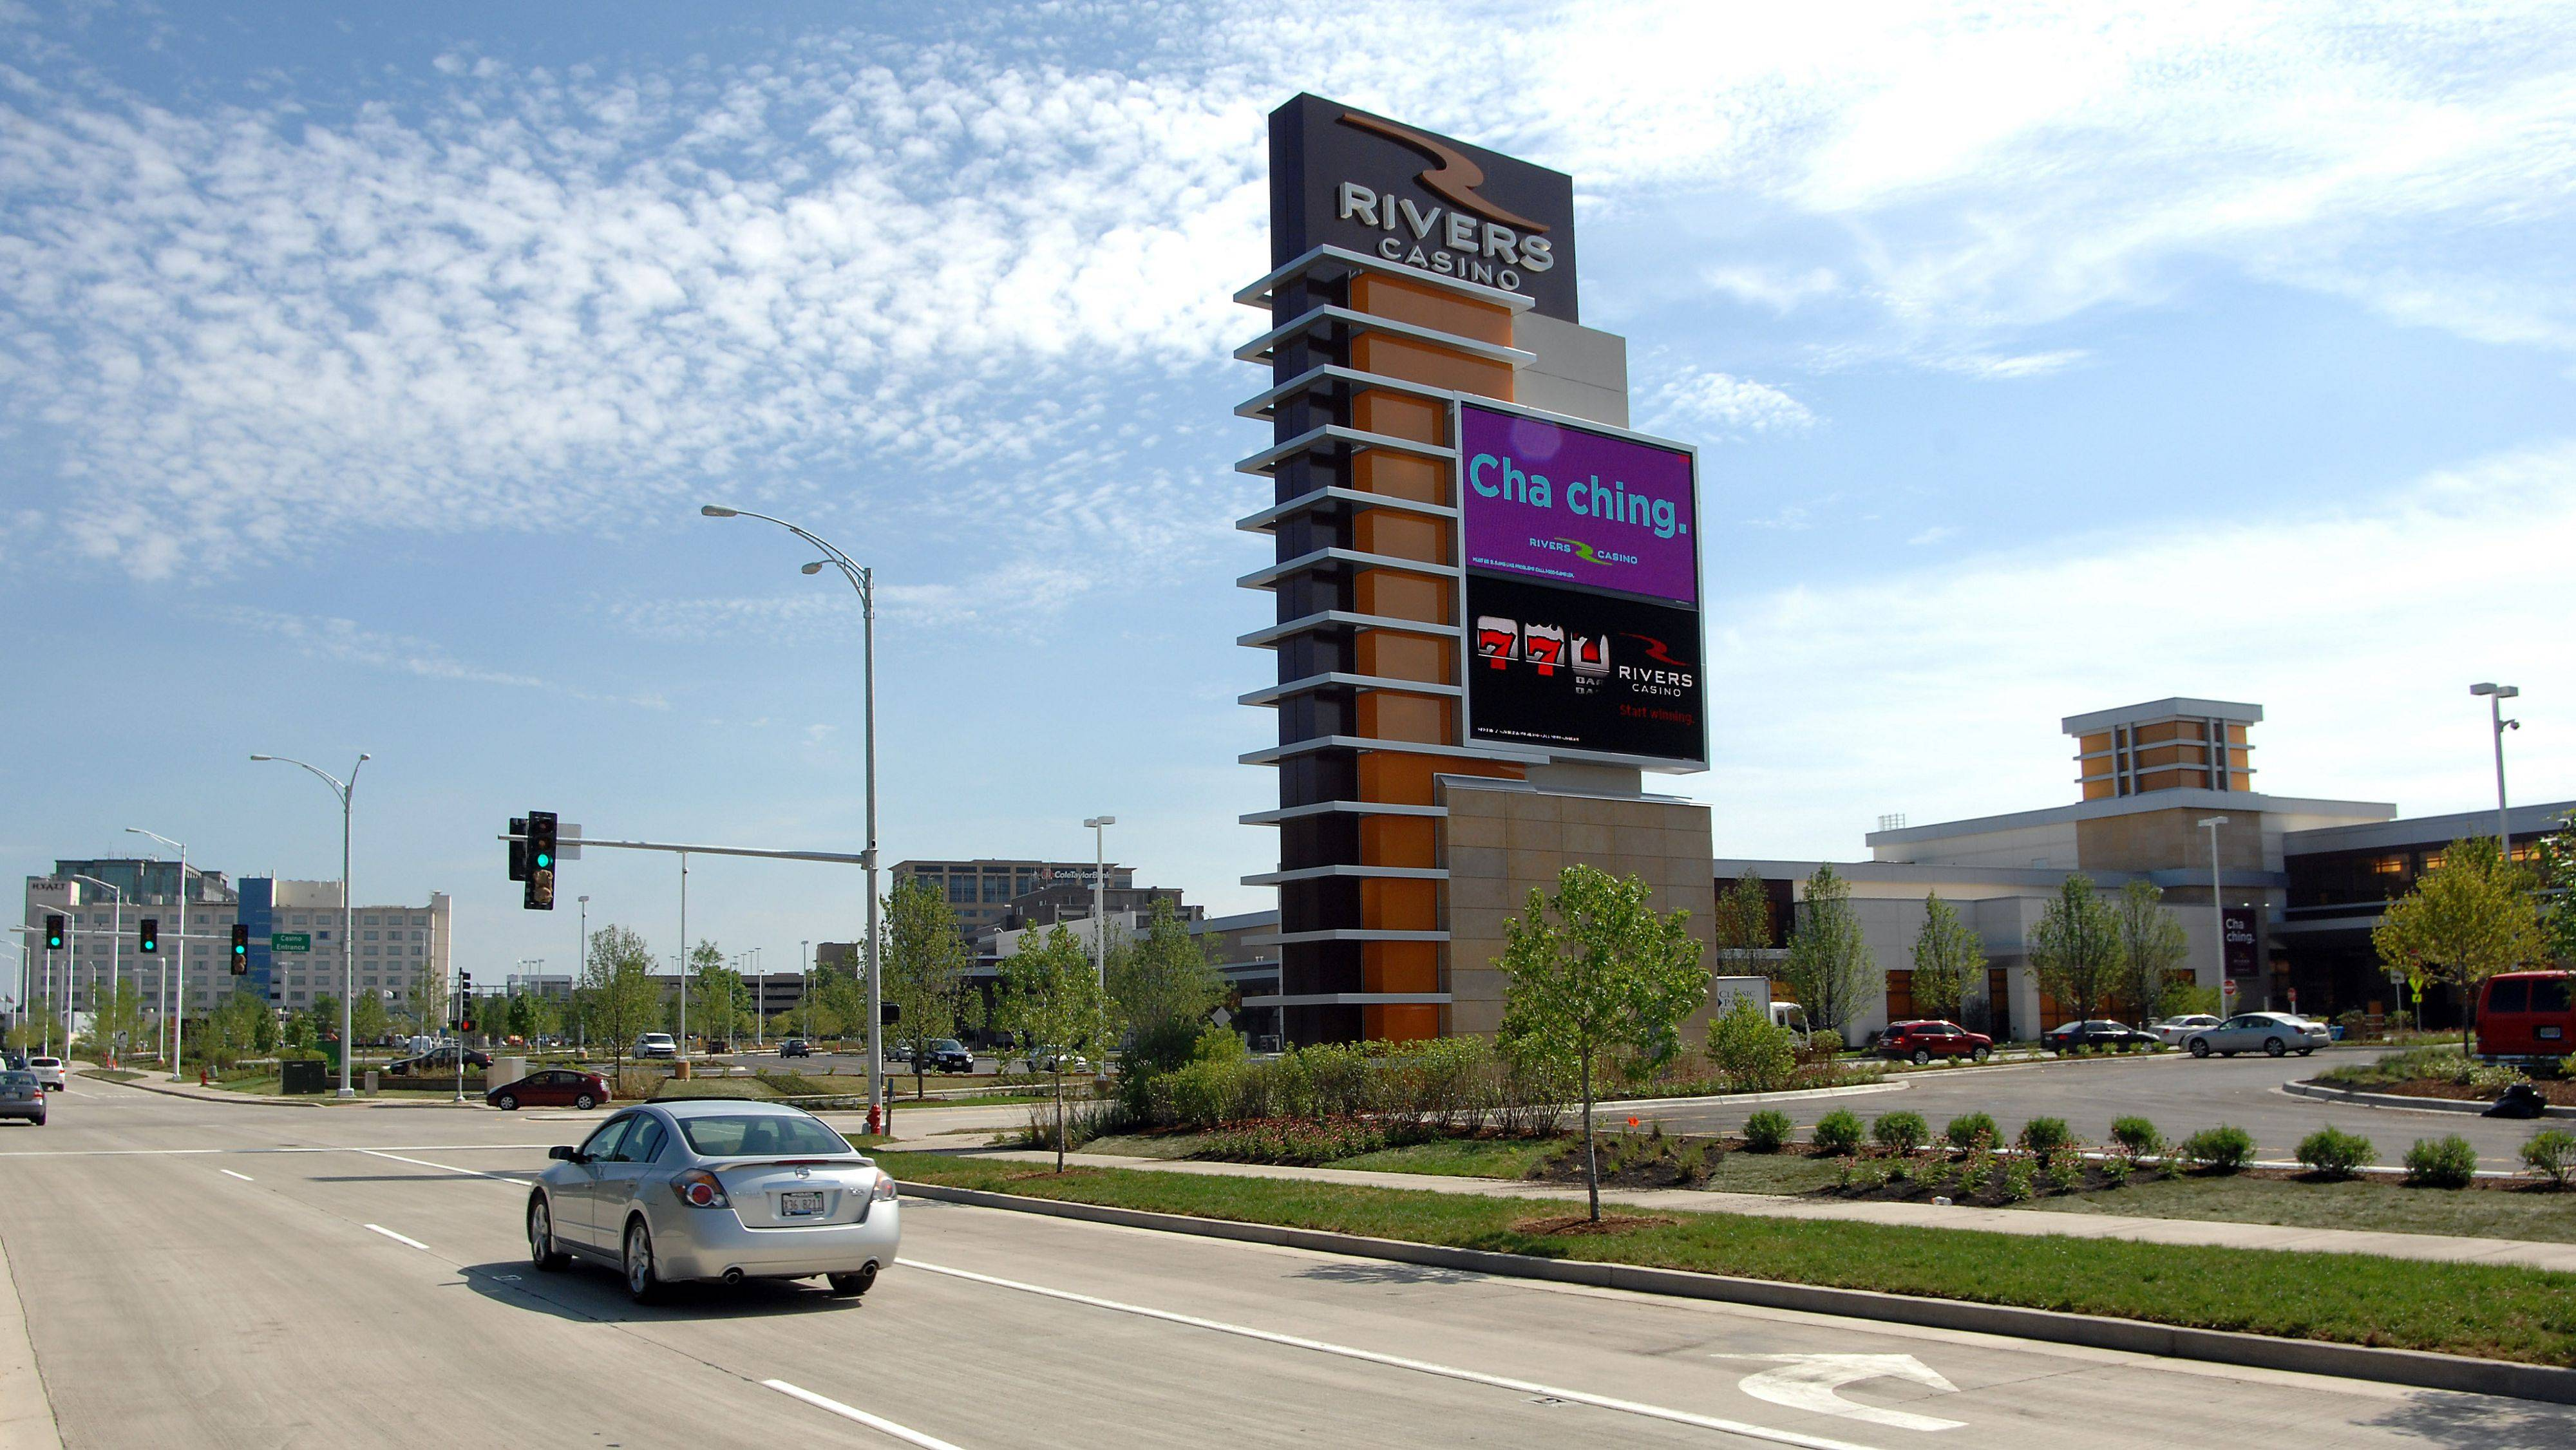 Rivers Casino in Des Plaines is set to open on July 18. City officials are more optimistic than the state and project the Rivers Casino will generate $325 million to $400 million in its first year, drawing gamblers away from rival casinos due to its sheer novelty, and its proximity to Chicago and O�Hare International Airport.